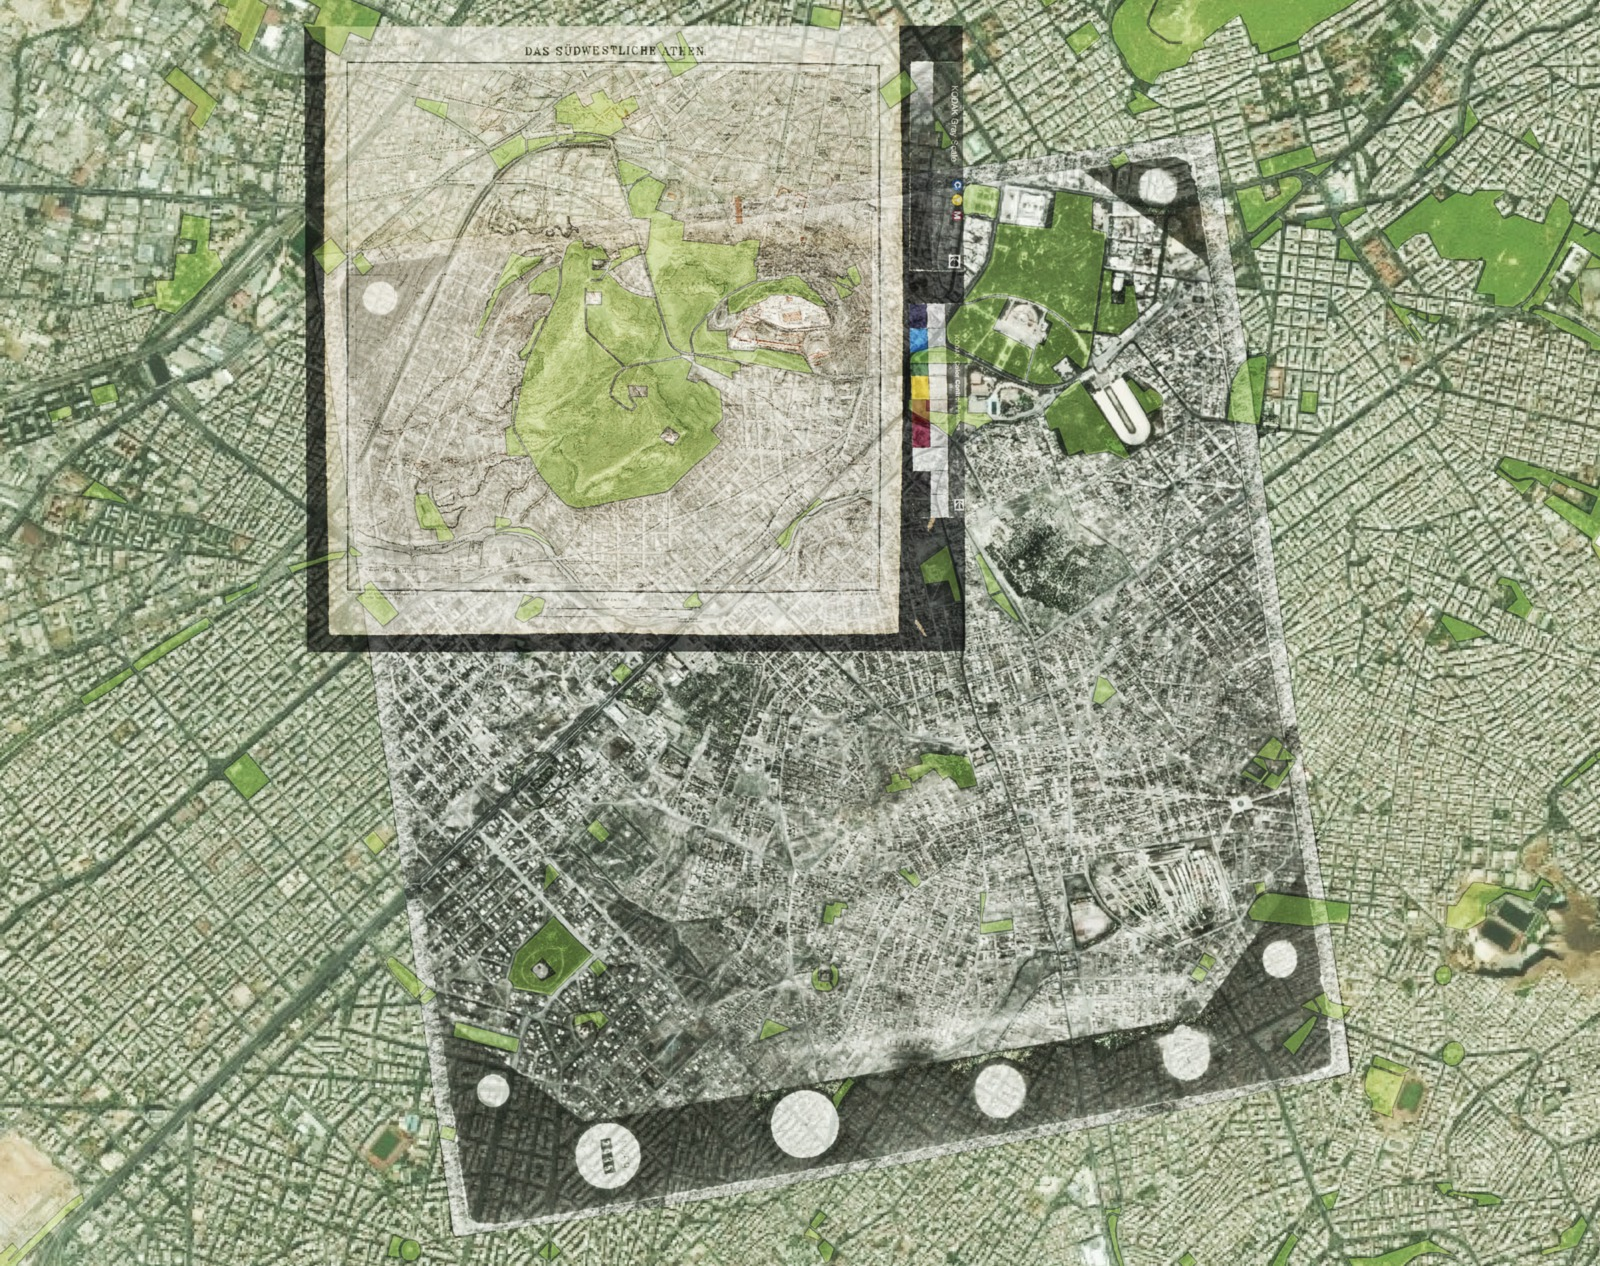 Georeferencing of aerial photograph of central Athens (1939) from the Greek Military Service (scale: 1:18000) and the map by Curtius, E. & Kaupert, J. A. 1878. Atlas von Athen. Berlin: ΒΙ.ΙΙΙ (scale 1:4000). Shown in transparency on top of modern basemap.